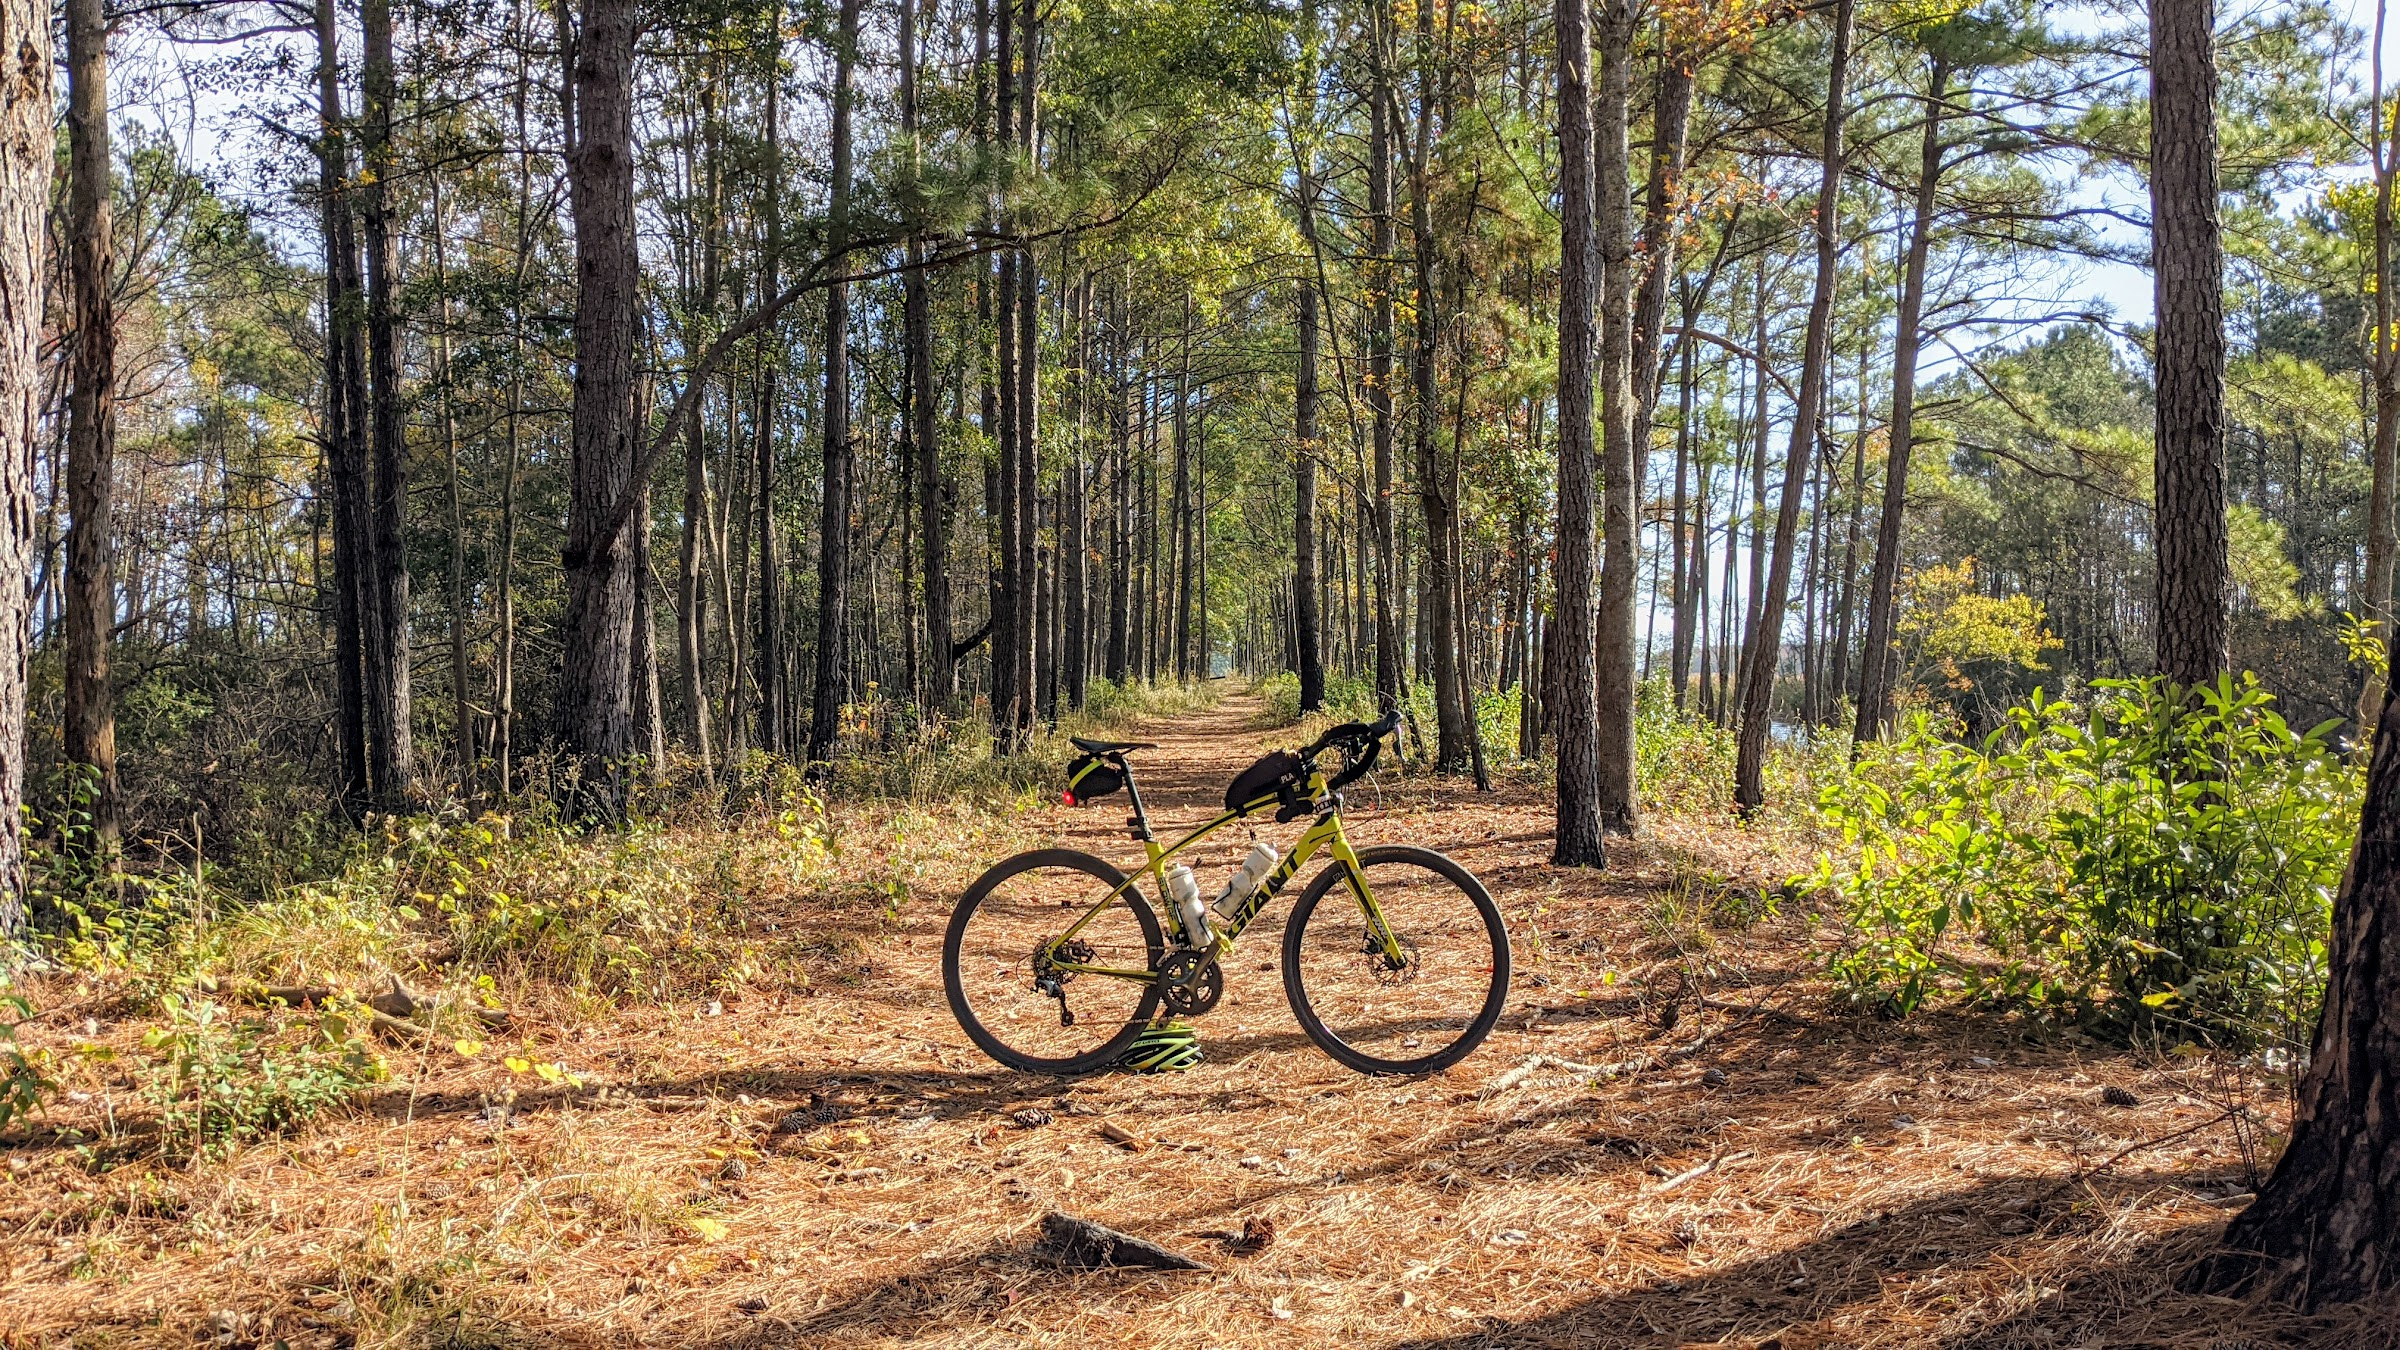 image from West Dike Lake Moultrie